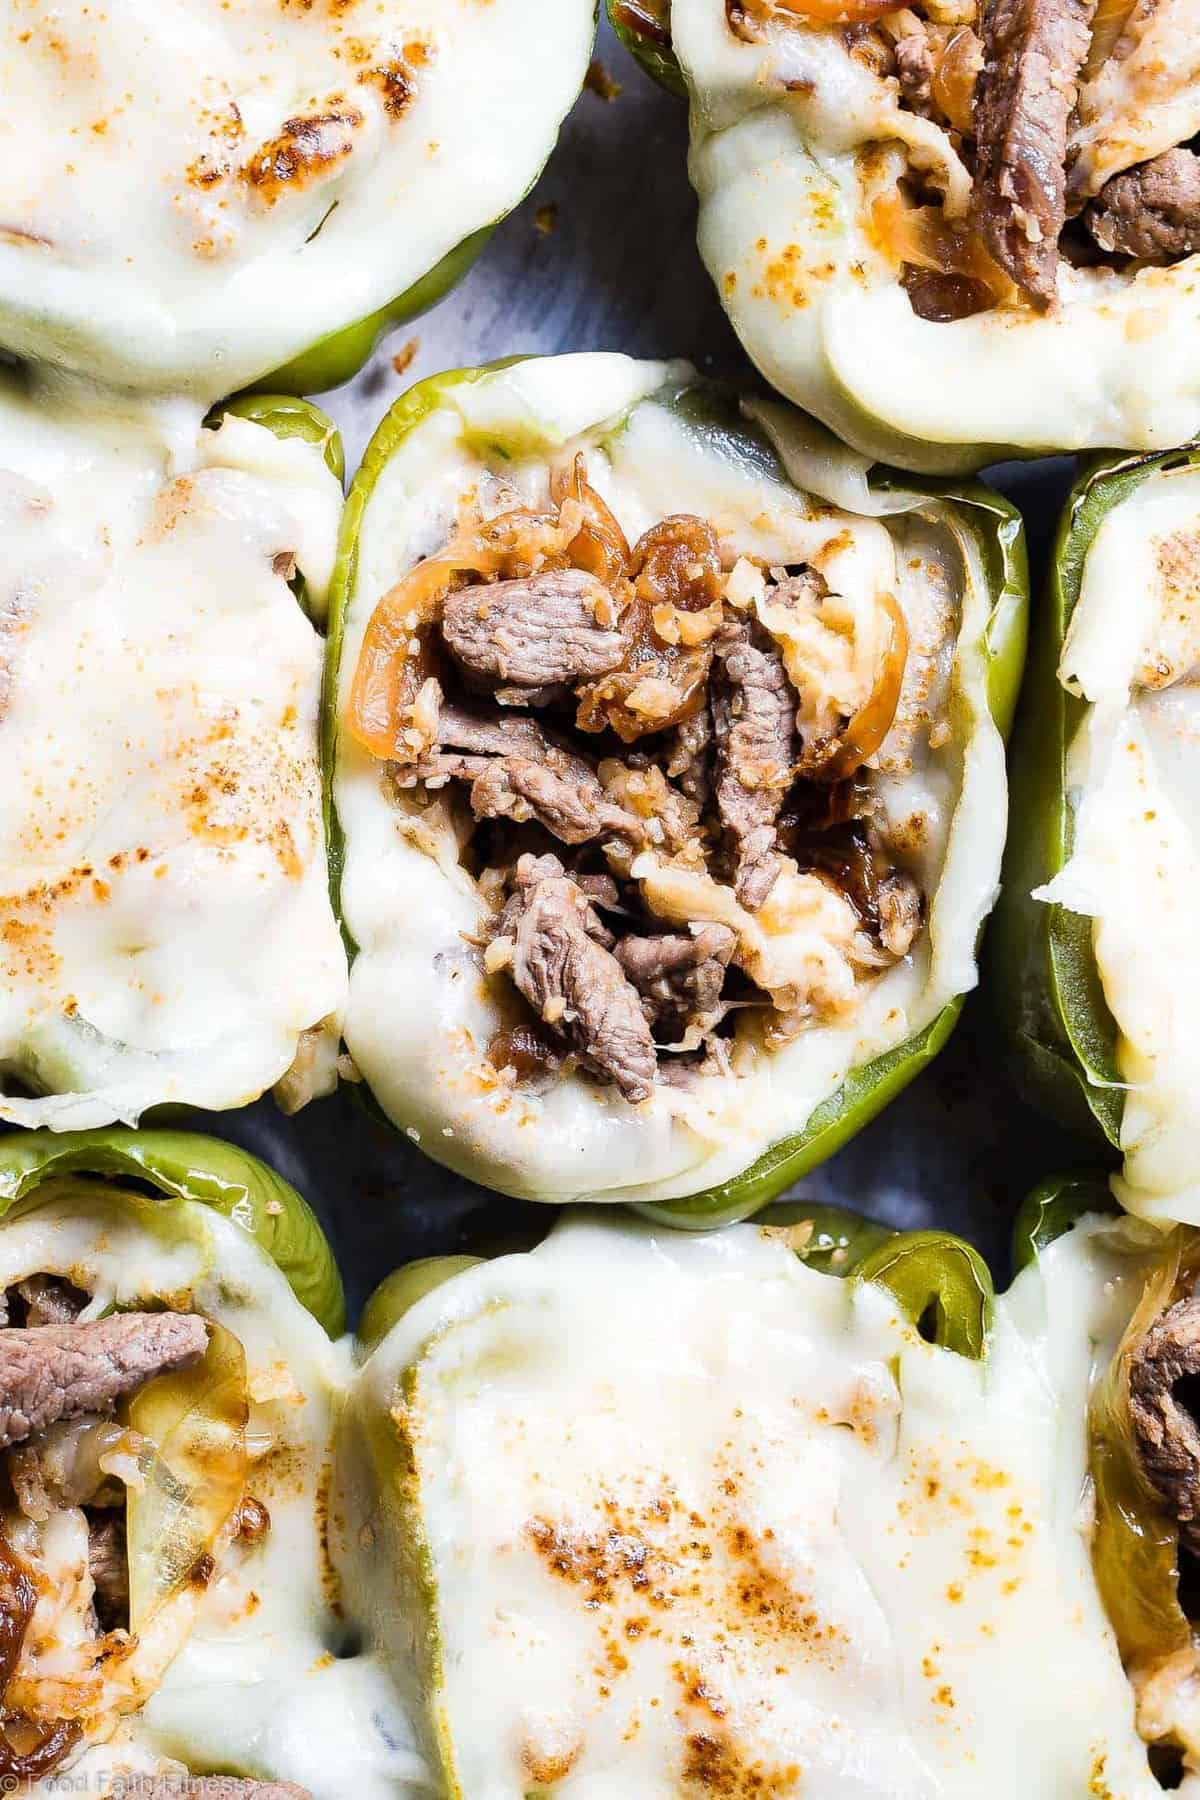 Low Carb Keto Philly Cheesesteak Stuffed Peppers - These stuffed peppershave all the flavors of your favorite sandwich in a healthy, low carb, easy weeknight meal that will please even picky eaters! Healthy comfort food at its best! | #Foodfaithfitness | #Glutenfree #Keto #Lowcarb #Healthy #Grainfree